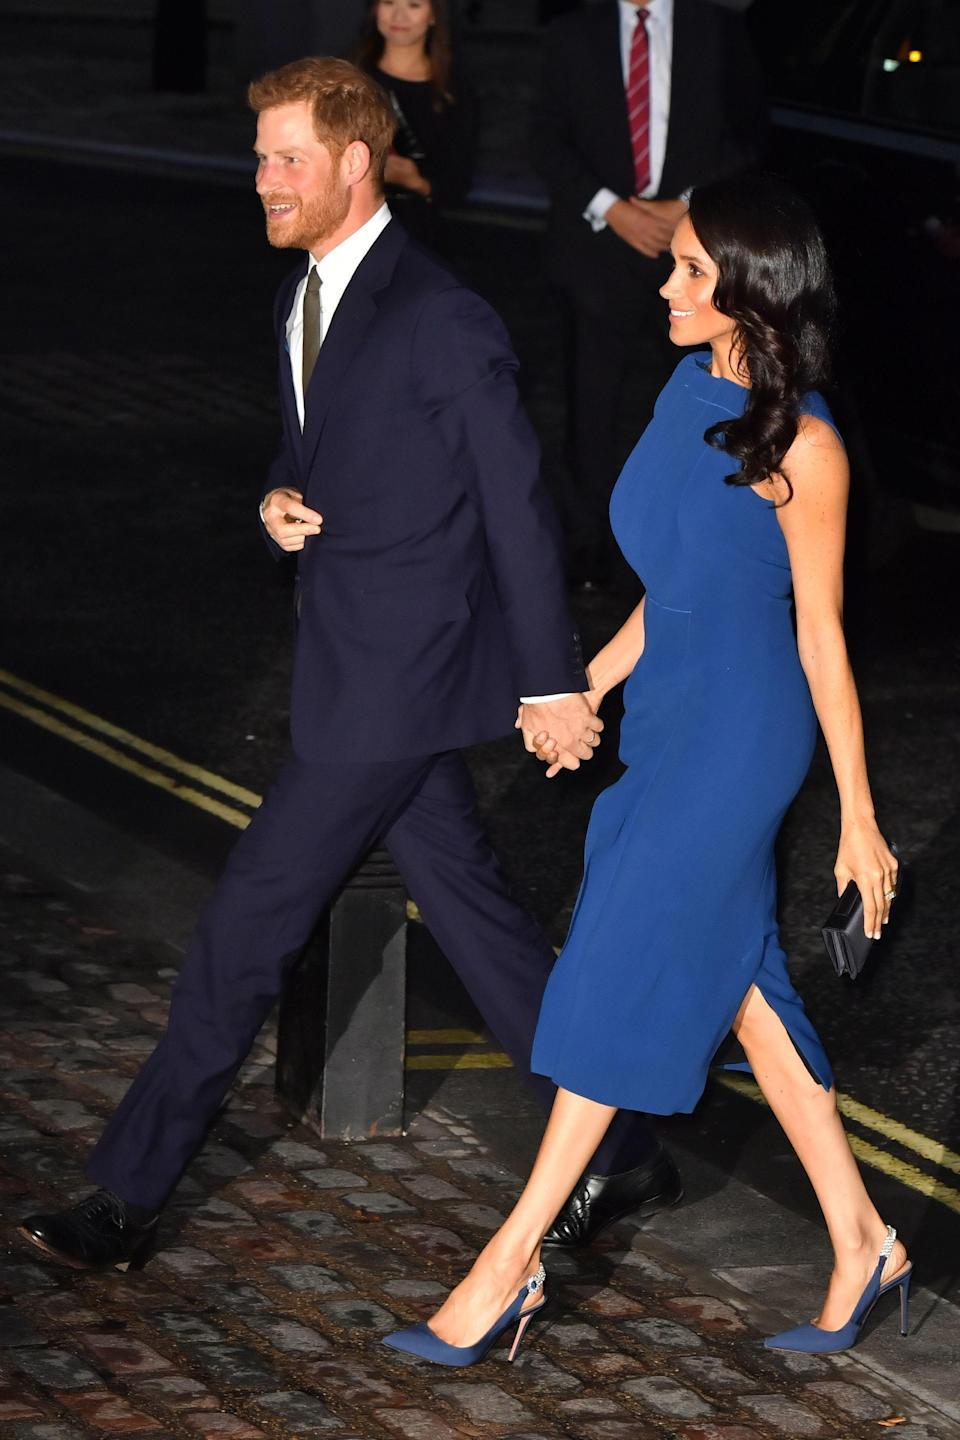 <p>For a charity gala concert at Central Hall Westminster, the Duchess of Sussex chose a royal blue midi stress by Jason Wu. She accessorised the look with co-ordinating Aquazurra heels and her go-to bespoke Dior clutch. In a surprising move, she ditched her now-trademark messy bun in favour of Duchess-worthy curls. <em>[Photo: PA]</em> </p>